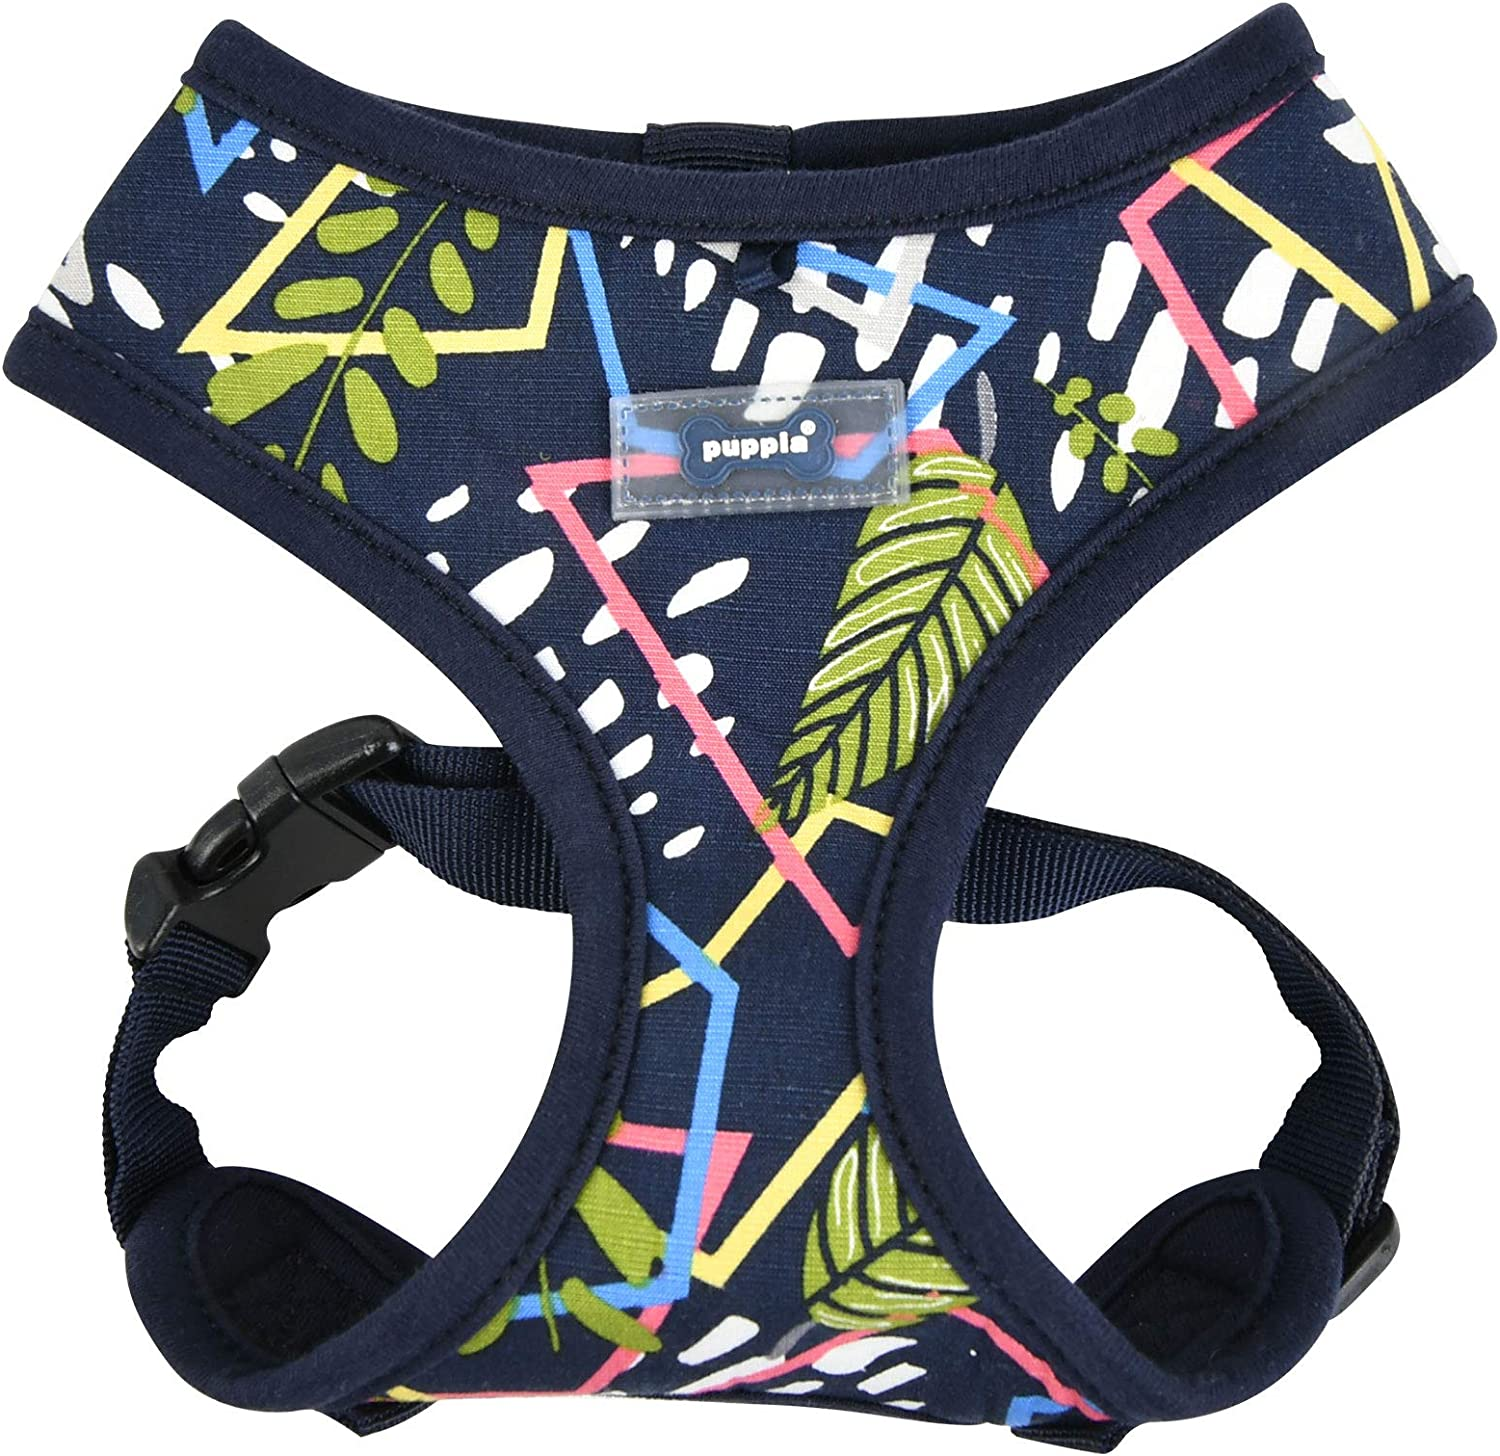 Puppia Dog Harness Botanical Sales Al sold out. for sale A